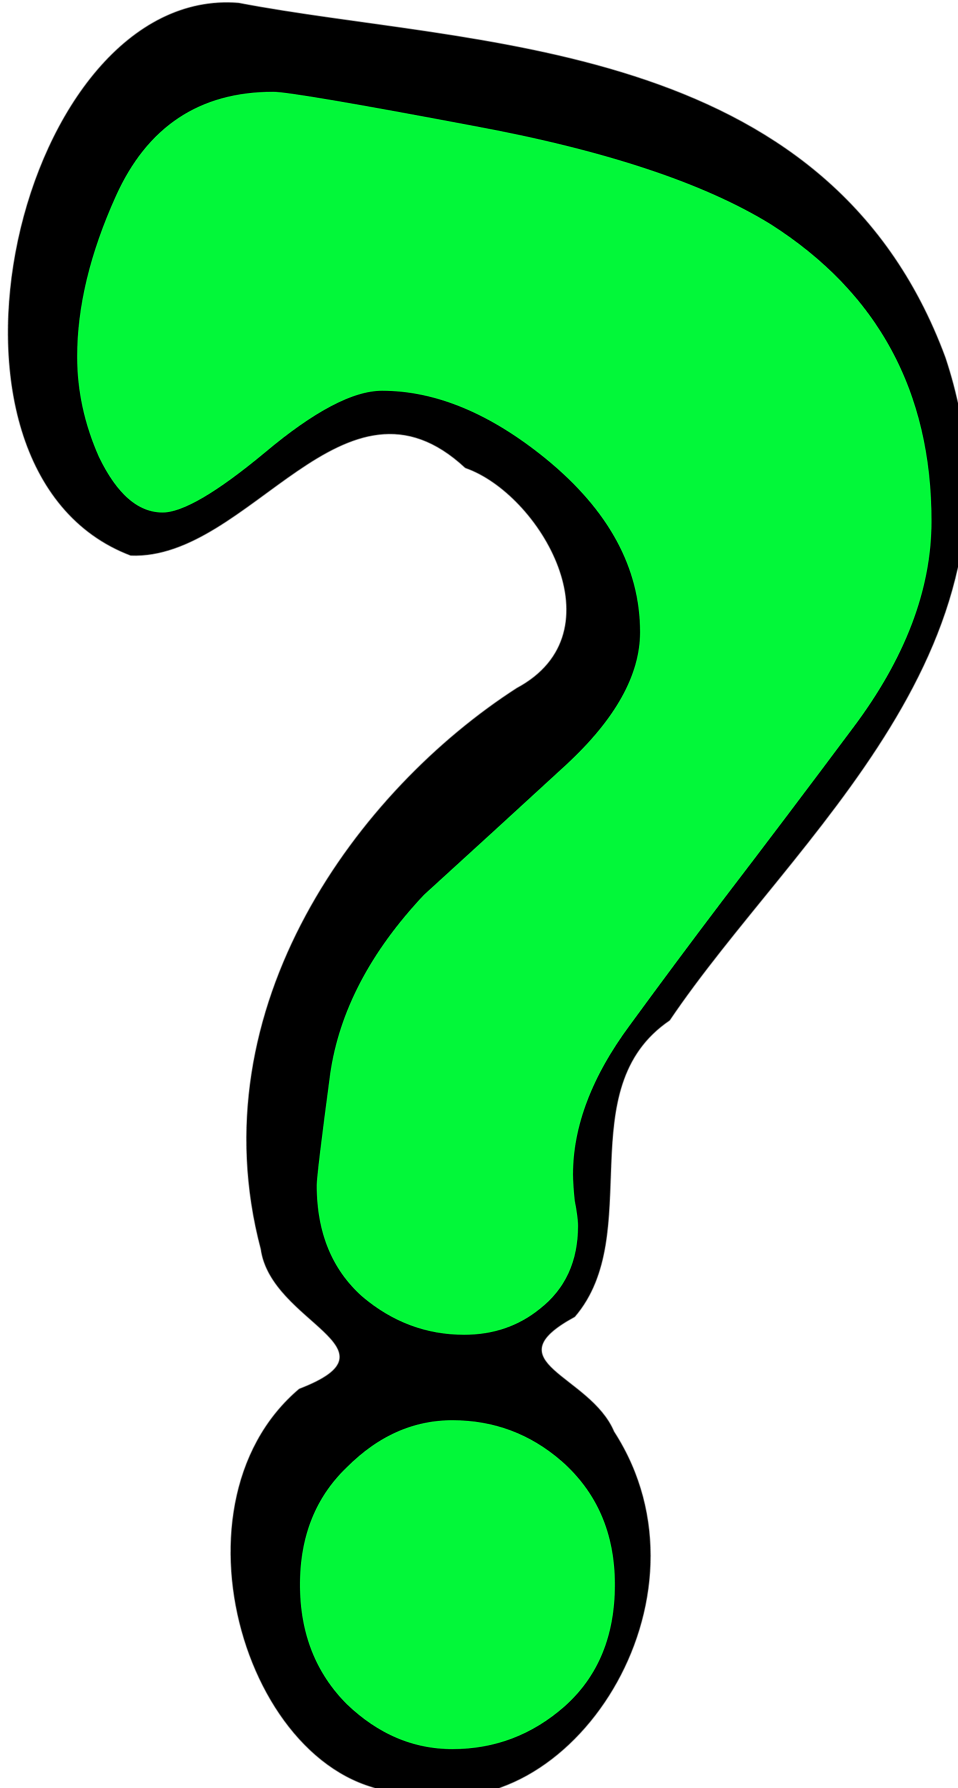 Cute question mark clipart png royalty free stock cute-question-mark-clipart - Queens County Politics png royalty free stock